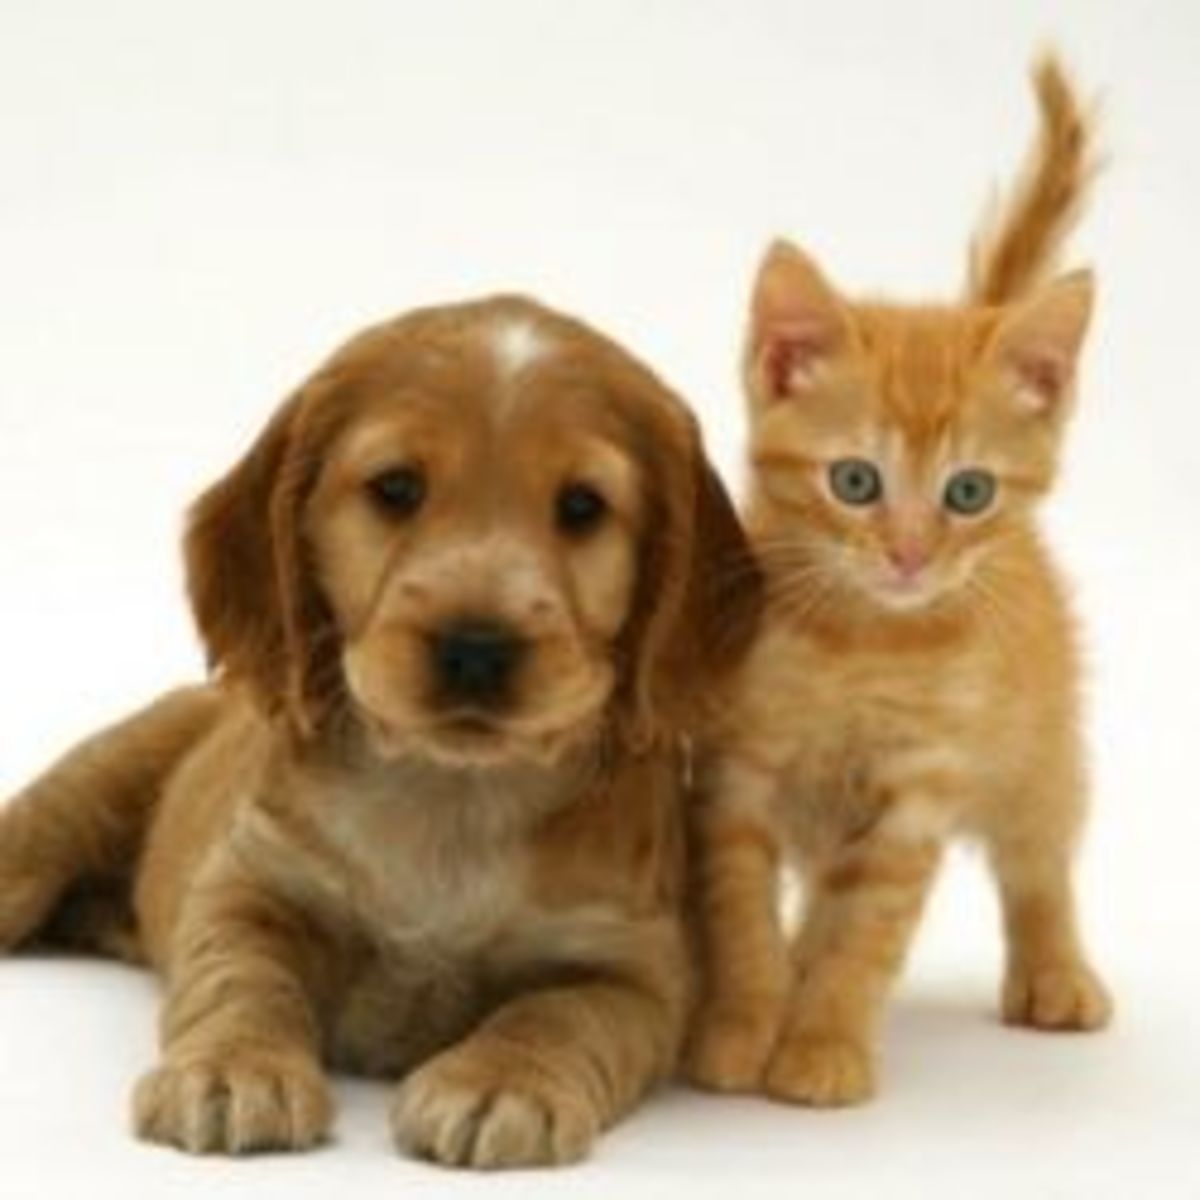 This cute photo of a Golden Cocker Spaniel Puppy with British Shorthair Red Tabby Kitten is by Jane Burton and is available at